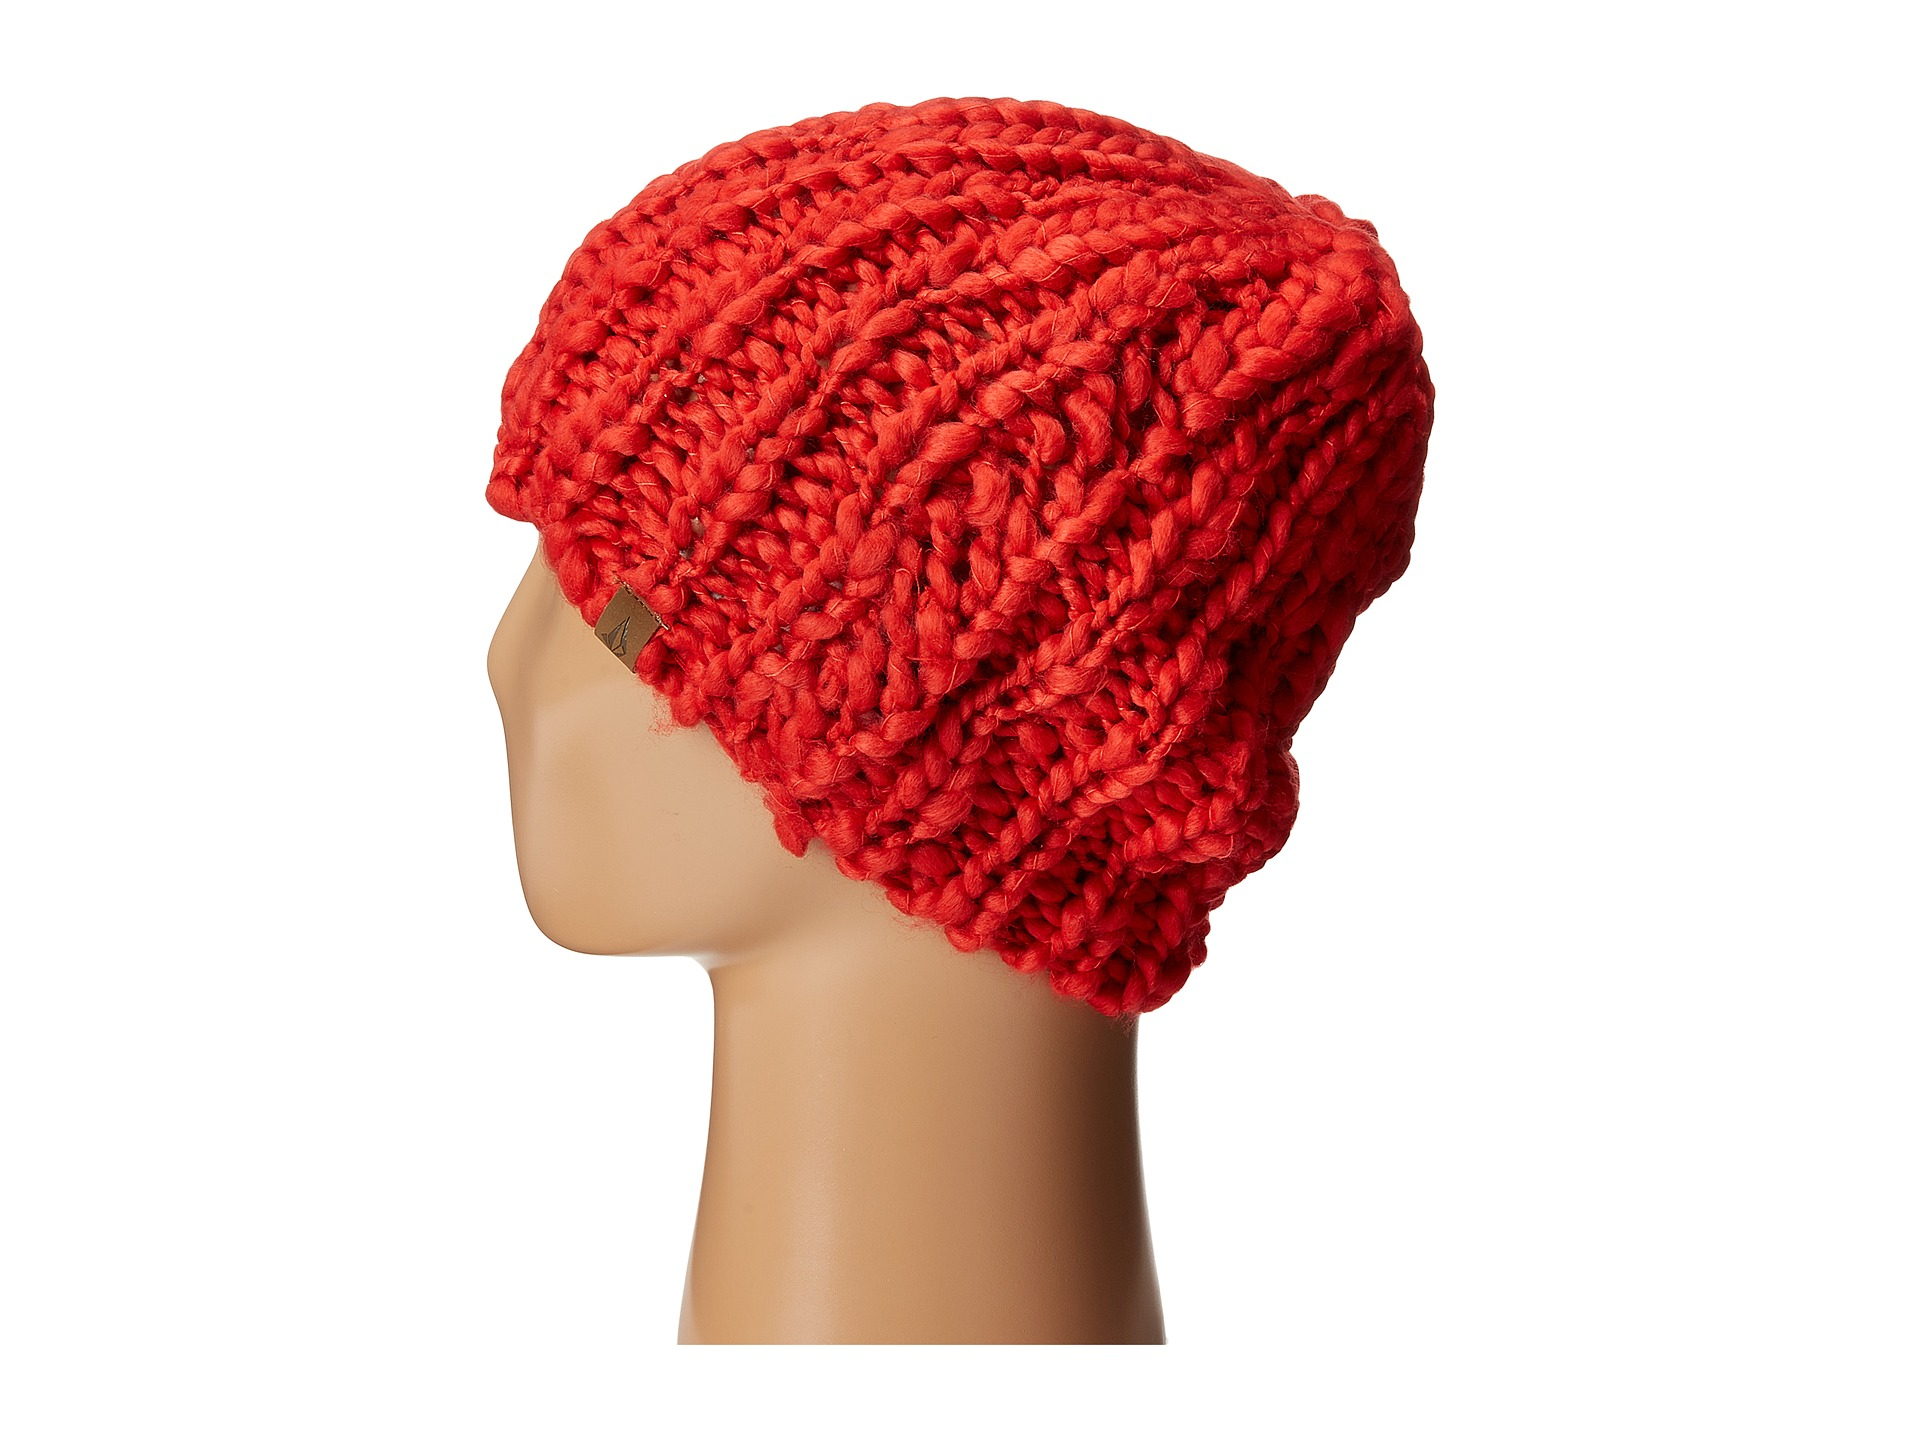 74964b1cf2e65 purchase closeout lyst volcom wanderer beanie in red 0adc9 a95f1 36a68 b12af